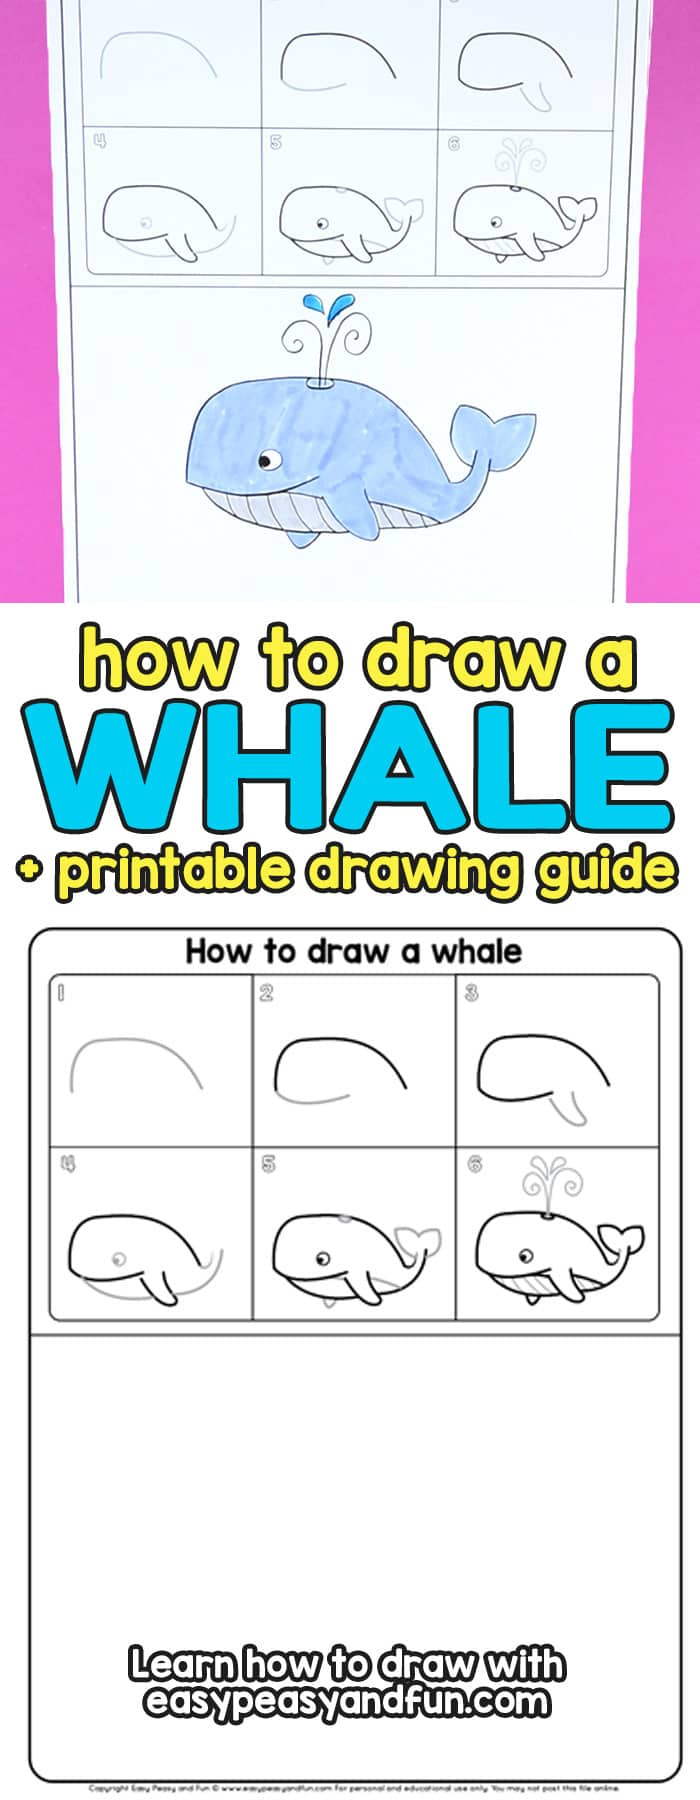 How to Draw a Whale Step by Step Tutorial for Kids (Cartoon Style)